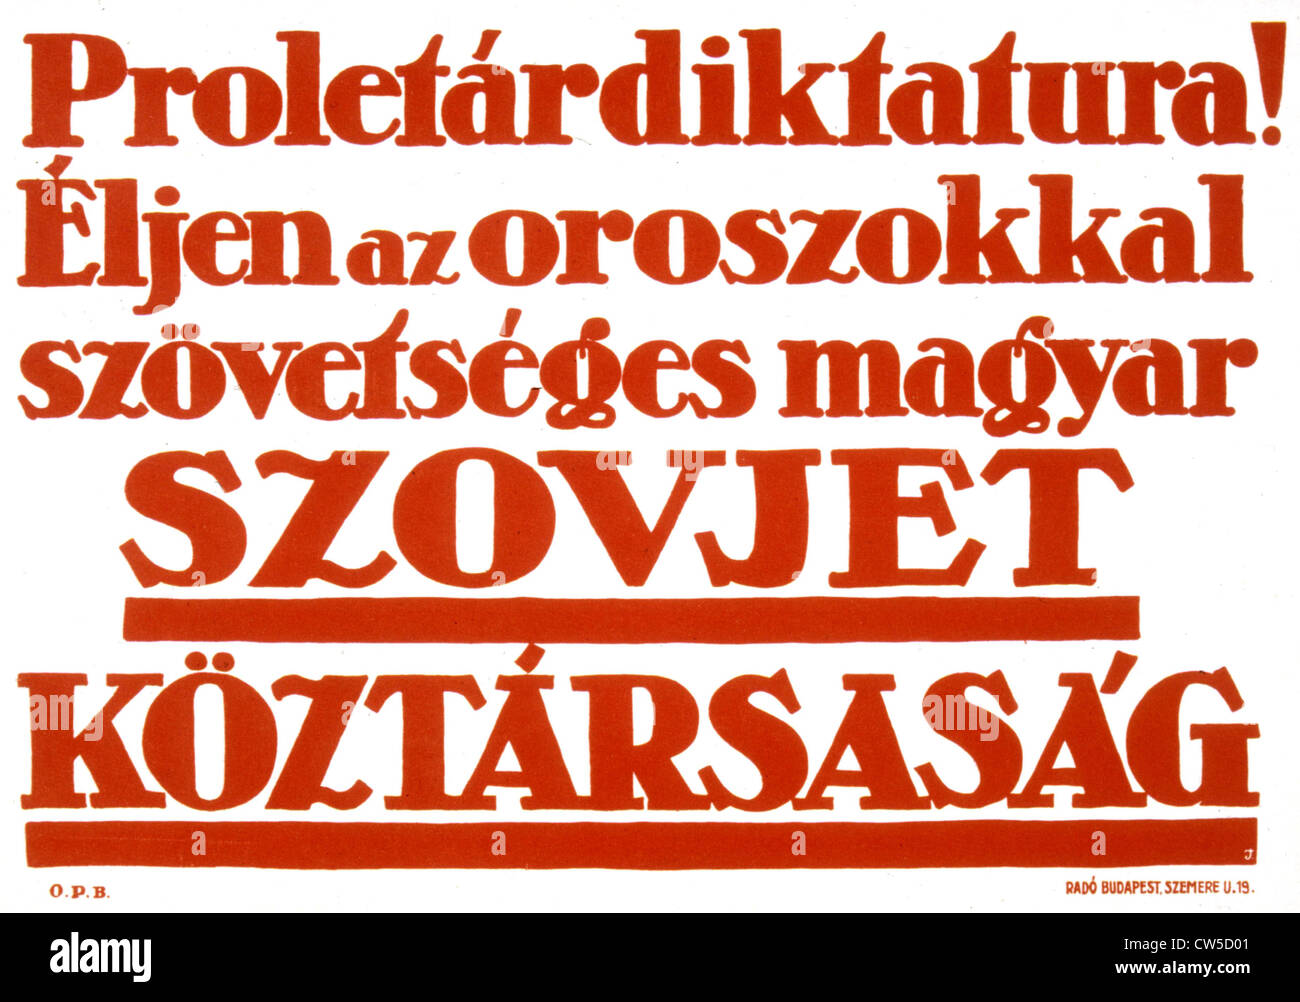 Propaganda poster by Erno JEGES (1898-1956) 1919 Hungarian revolution - Stock Image